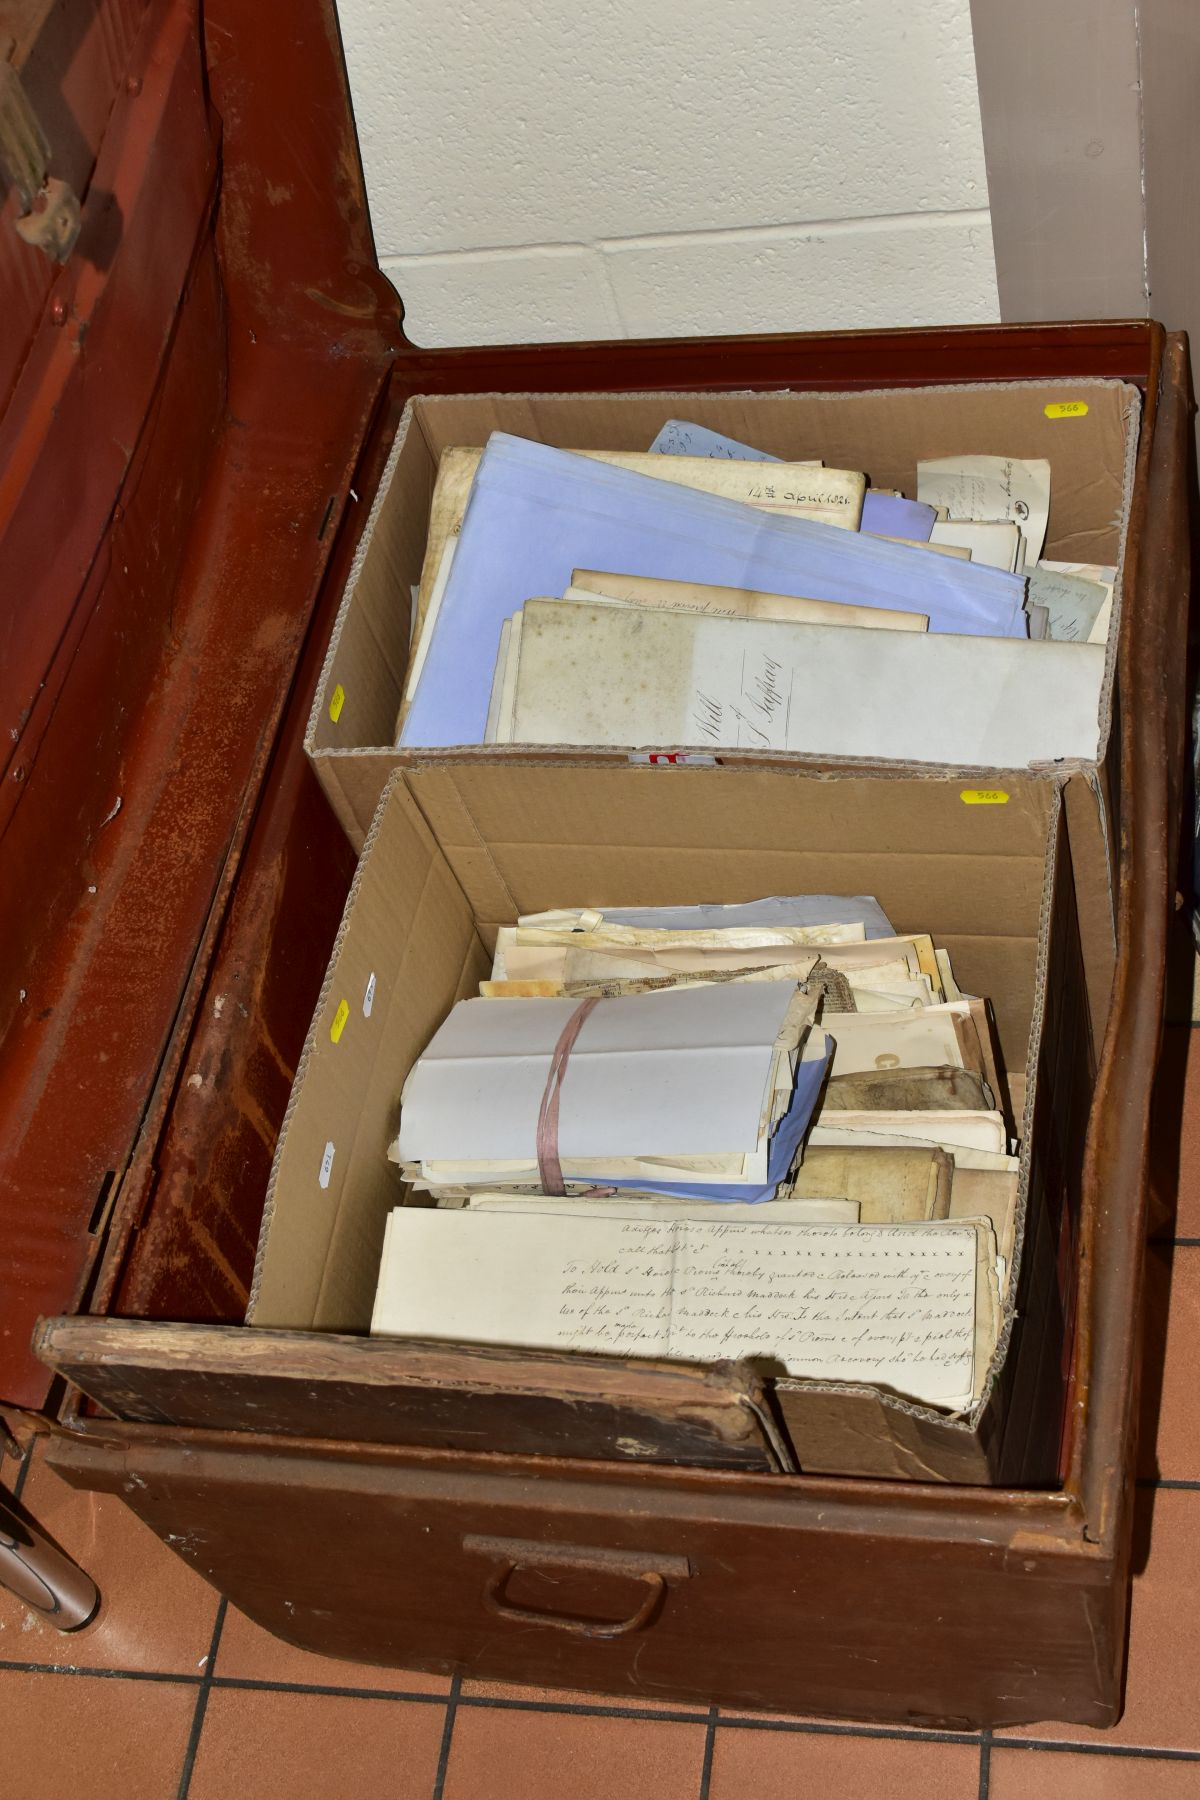 INDENTURES, a large metal trunk containing two boxes of several hundred Indentures, Conveyances,